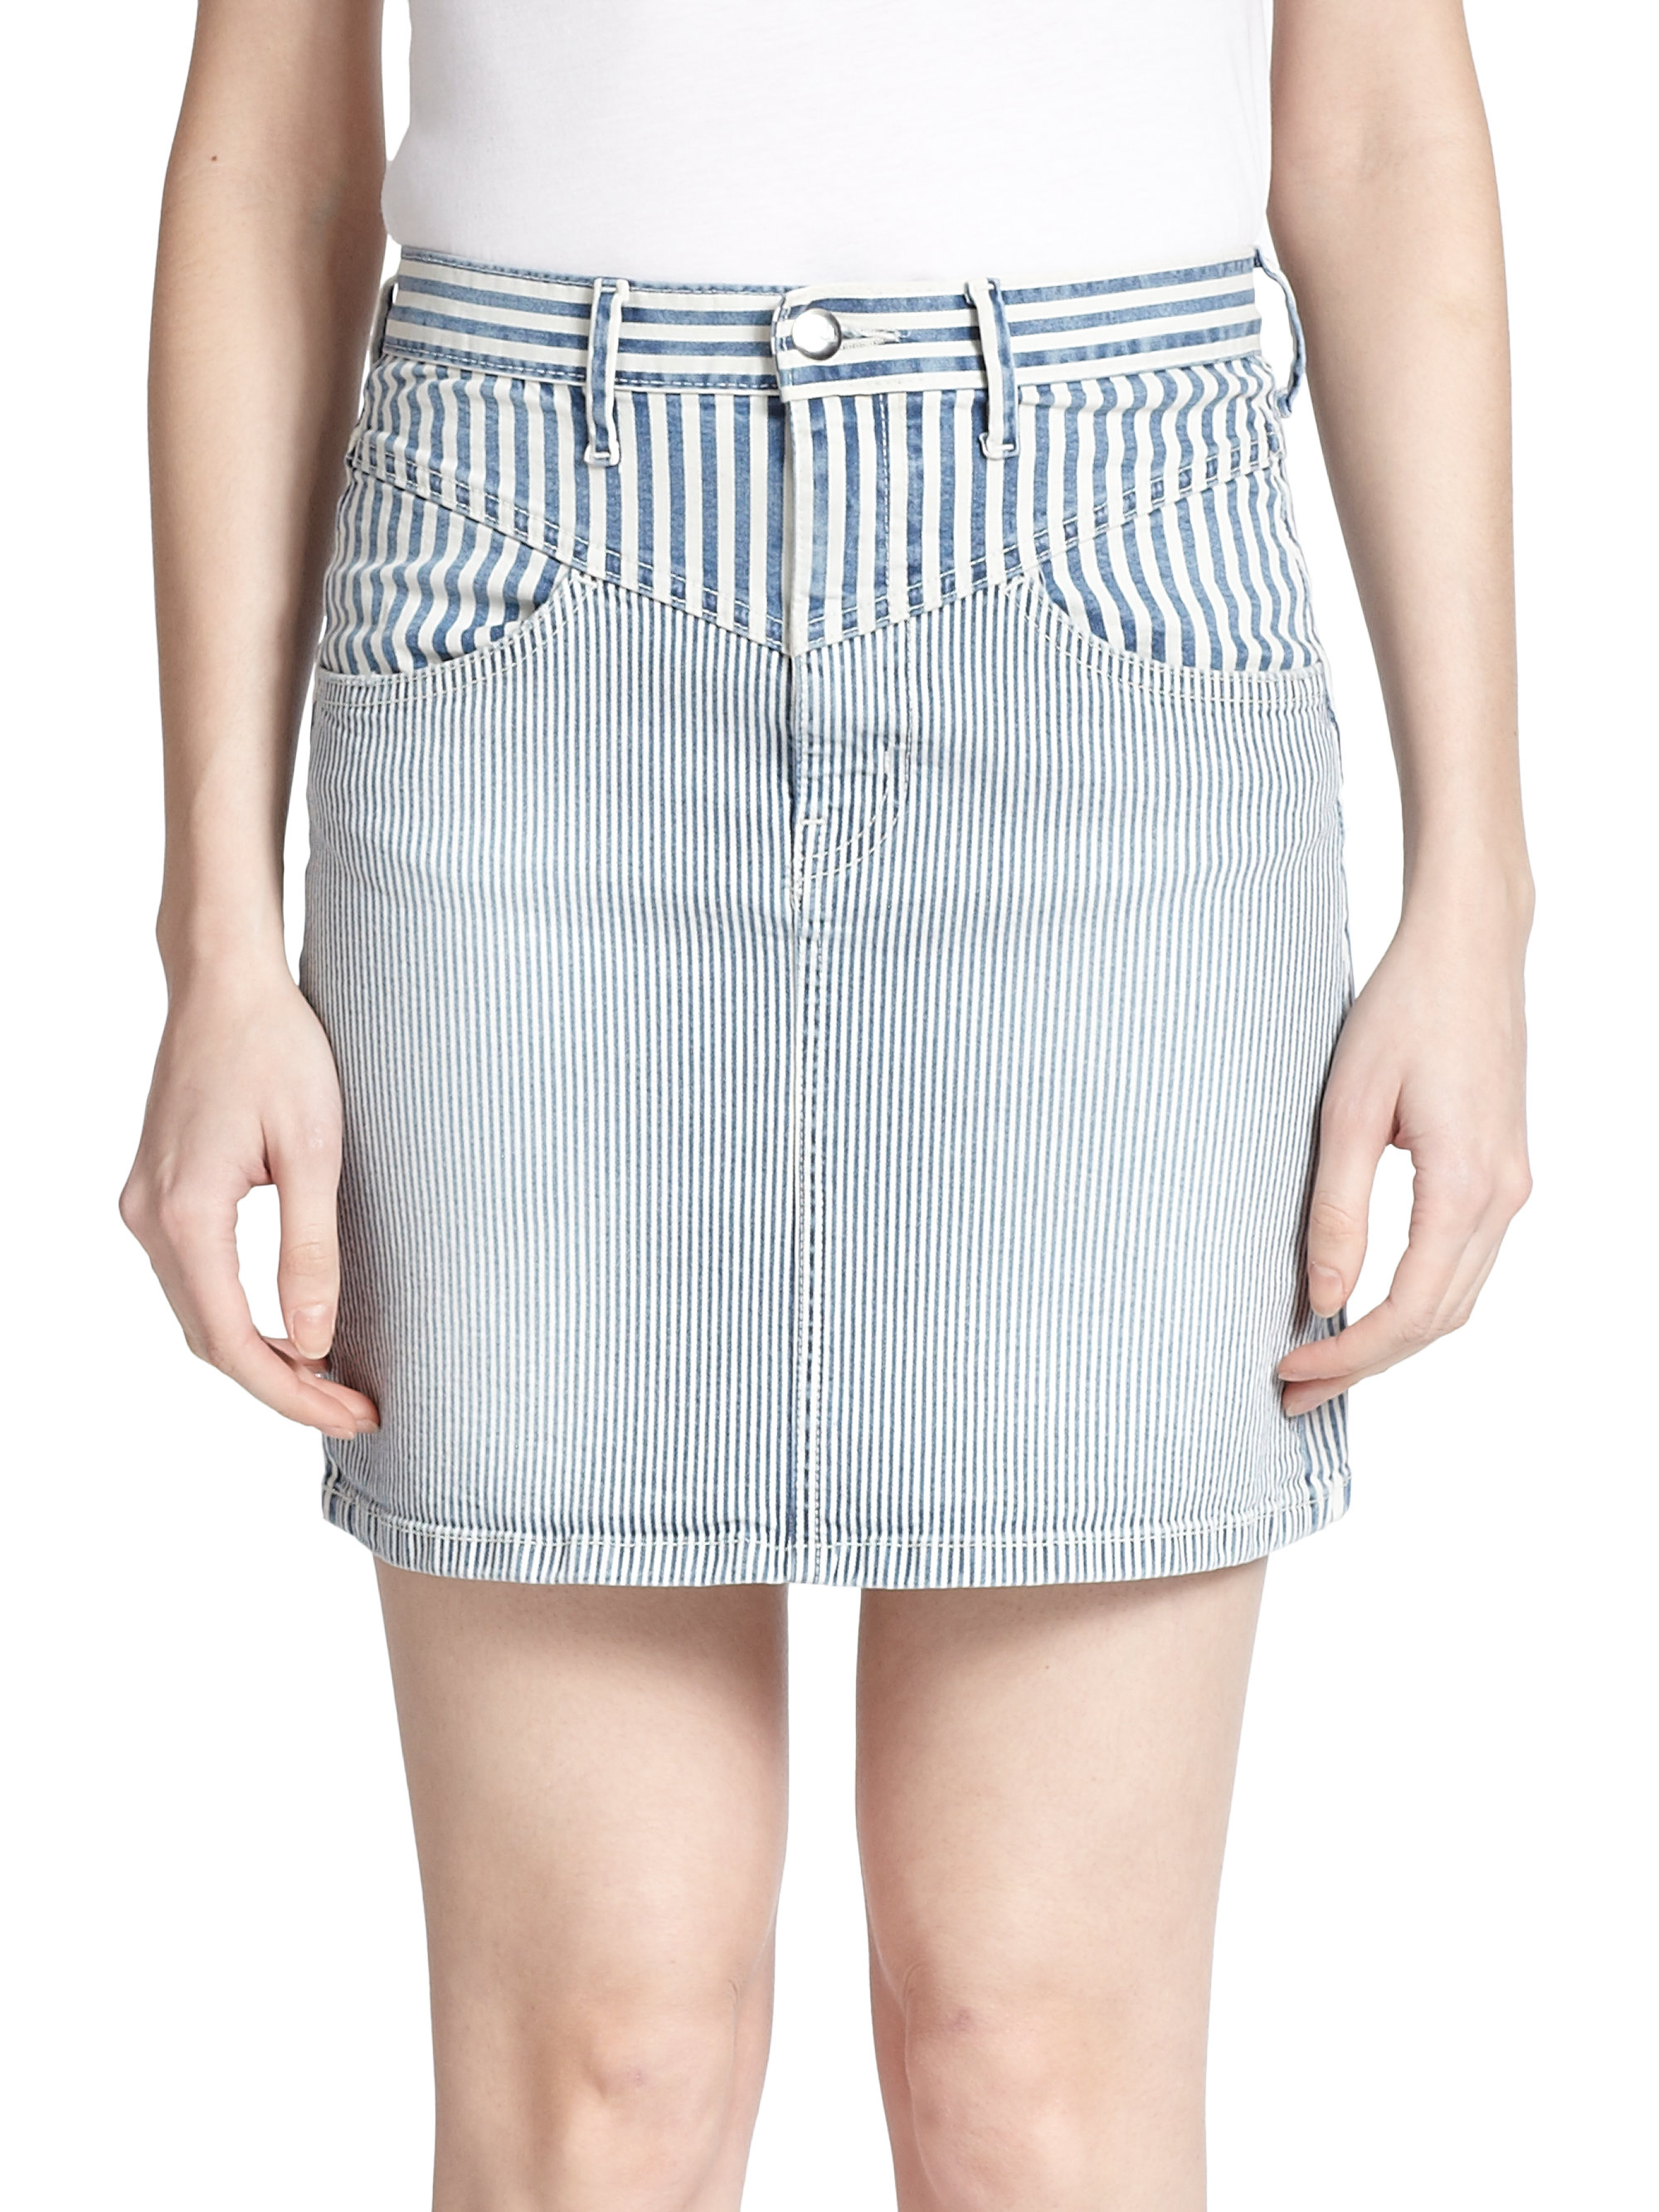 Koral Bari Striped Denim Mini Skirt in Blue | Lyst